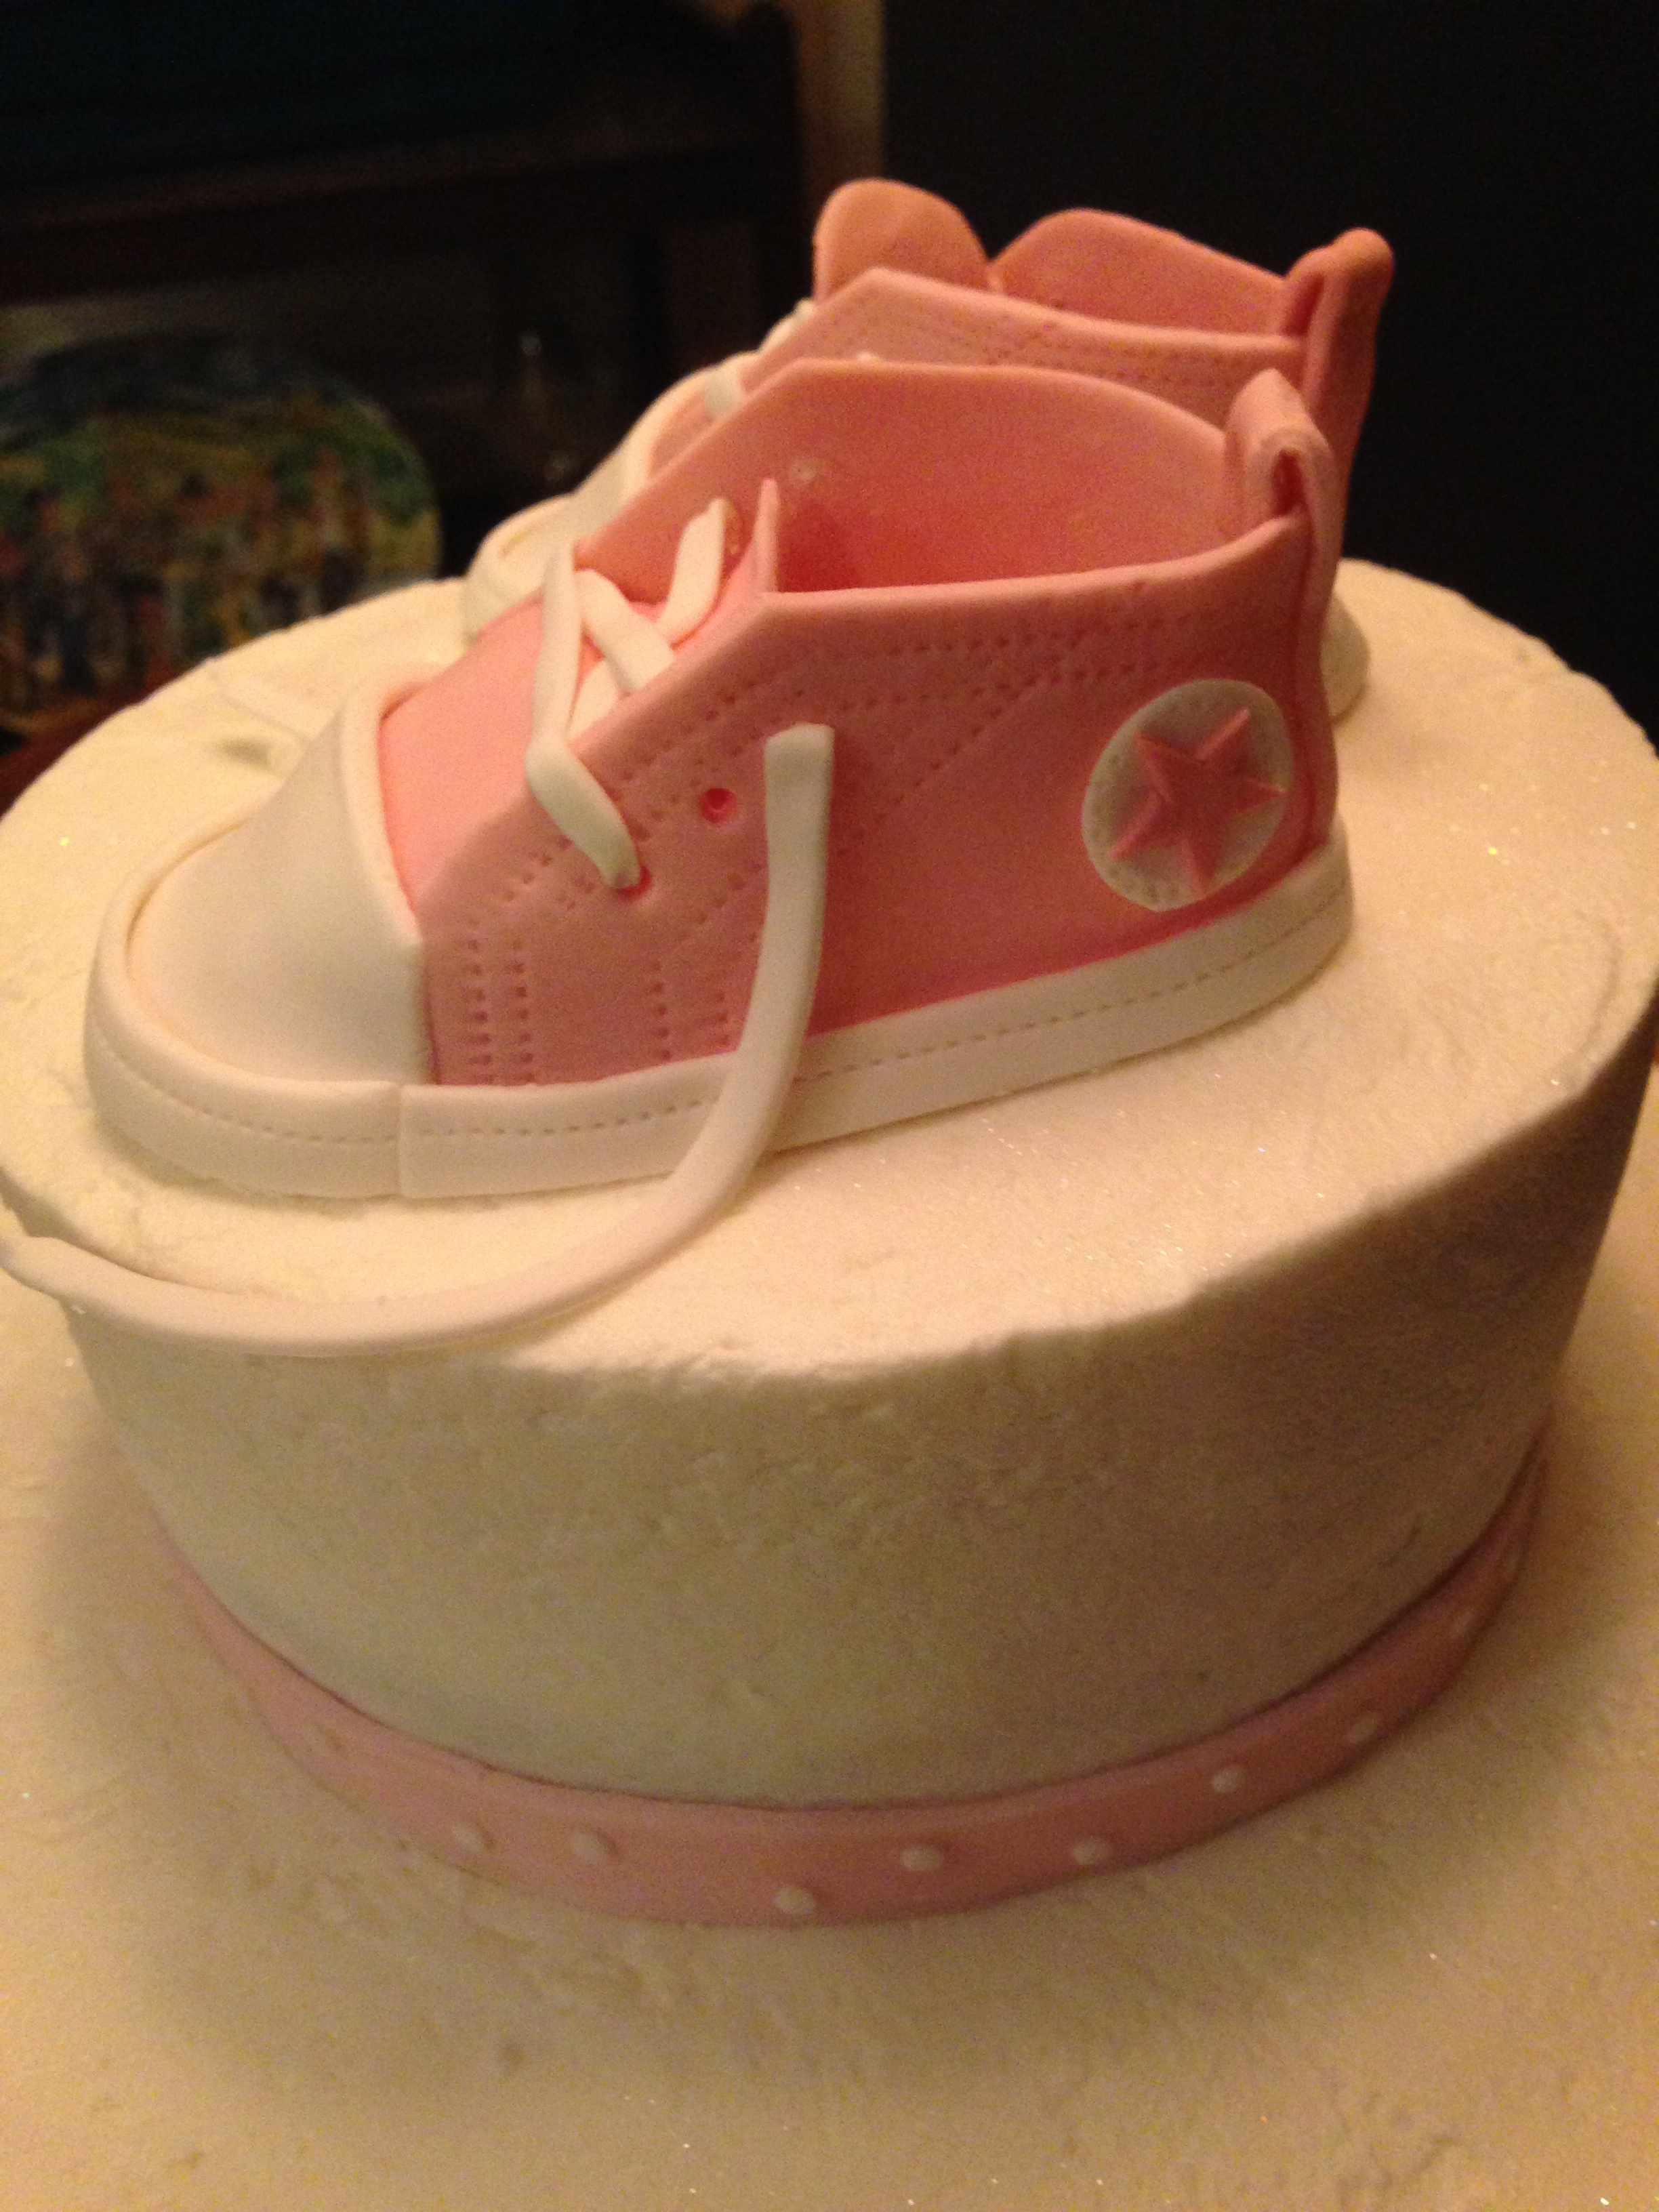 Baby Shoe Template Cake Central 1cb6008bc